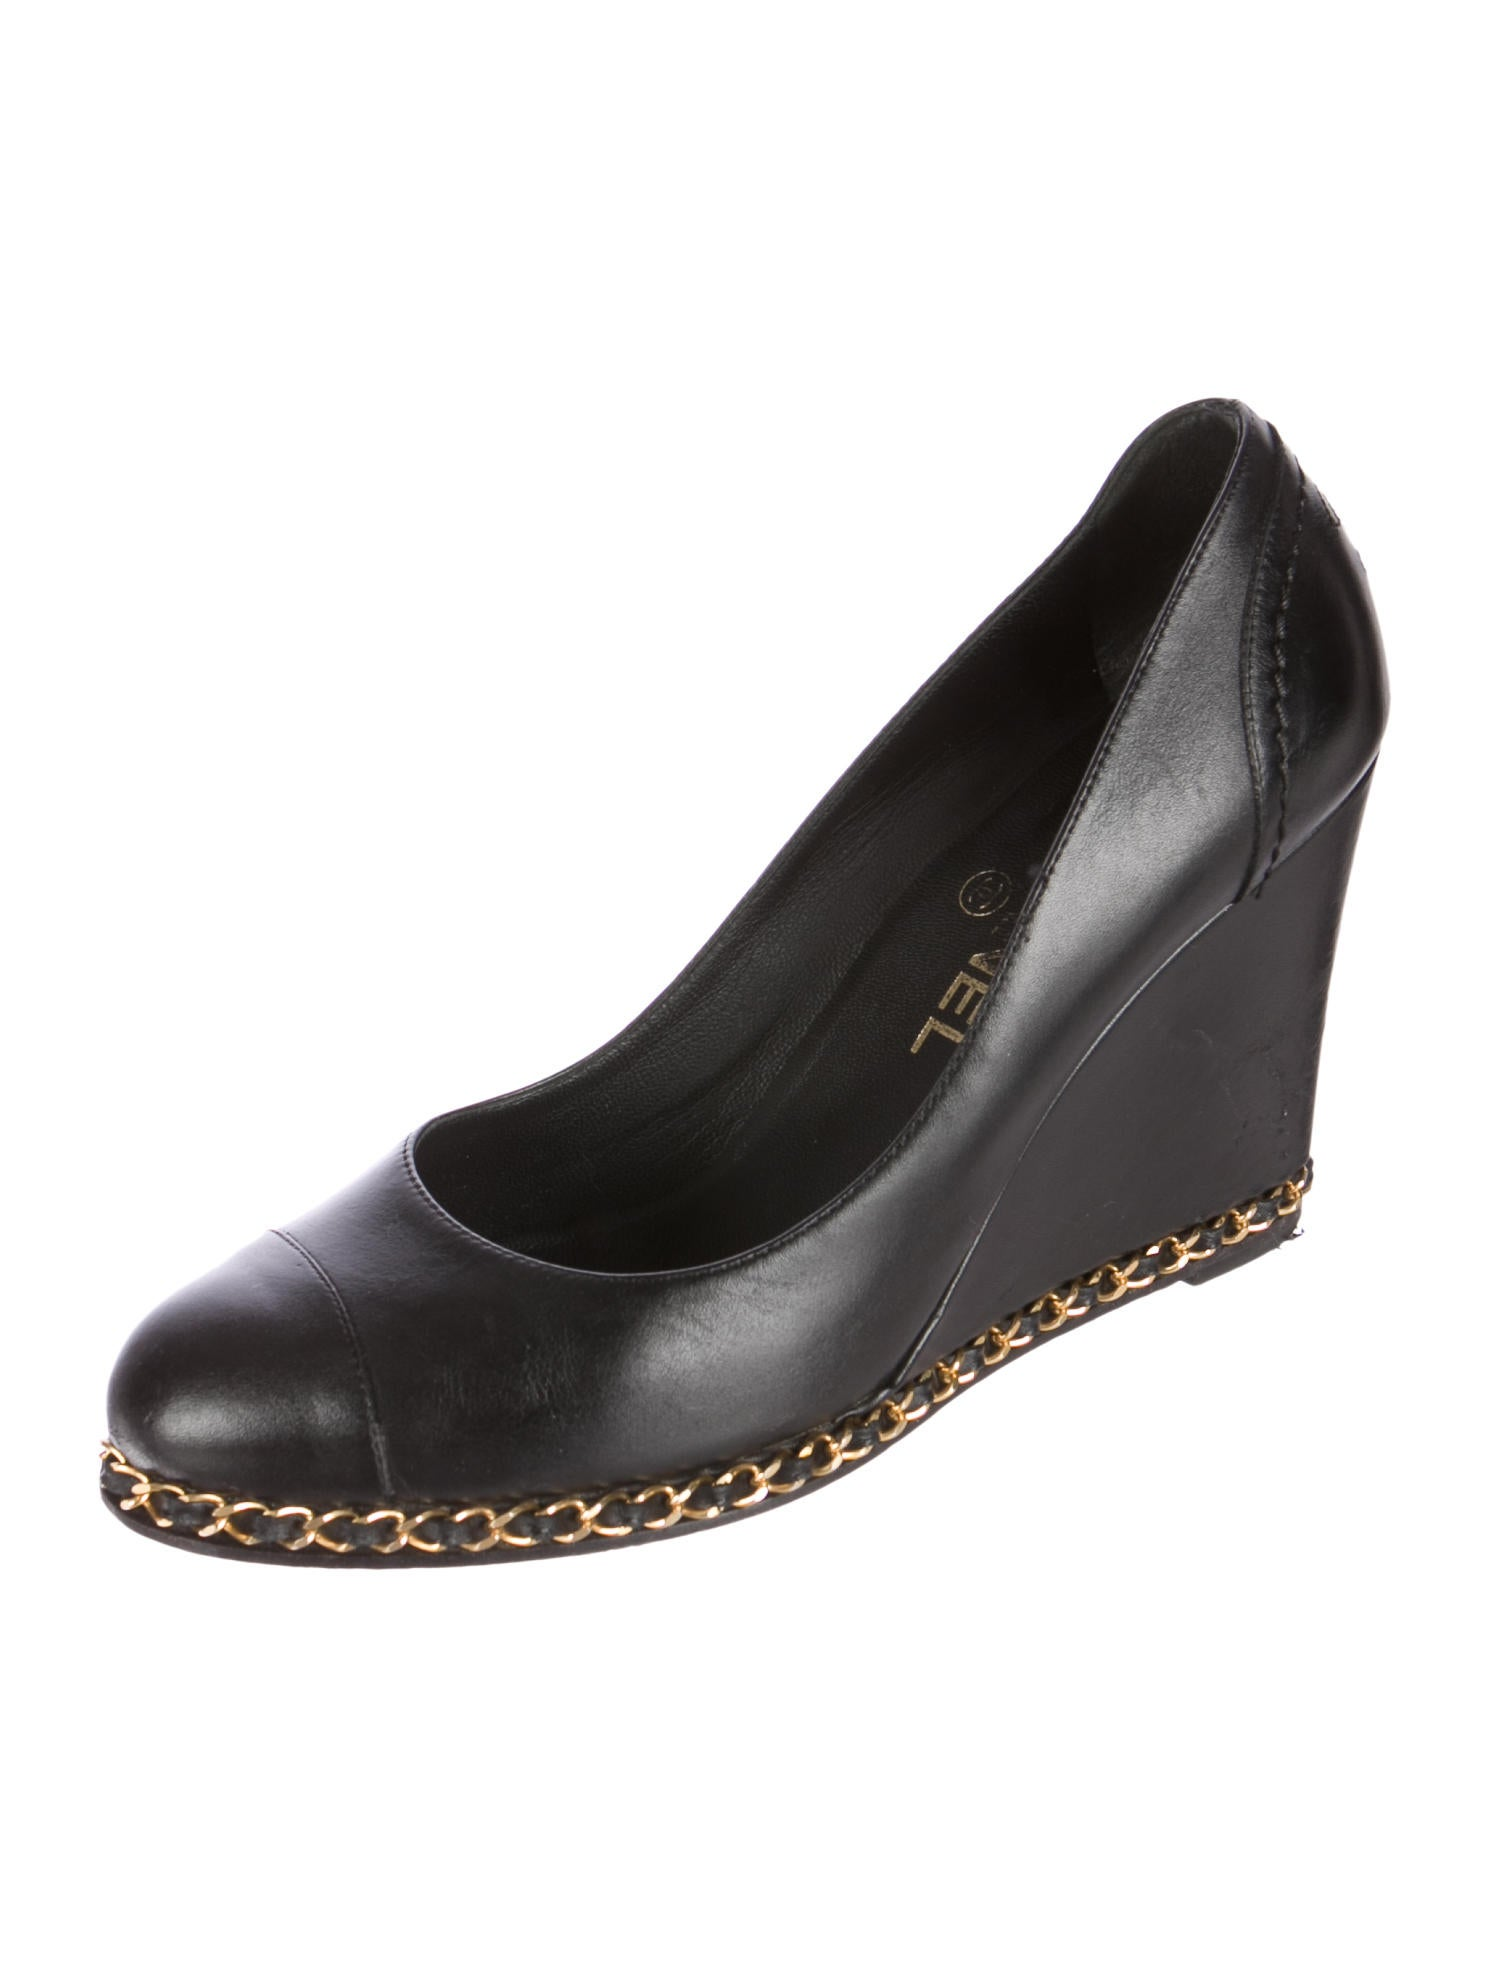 chanel leather chain link wedges shoes cha93678 the